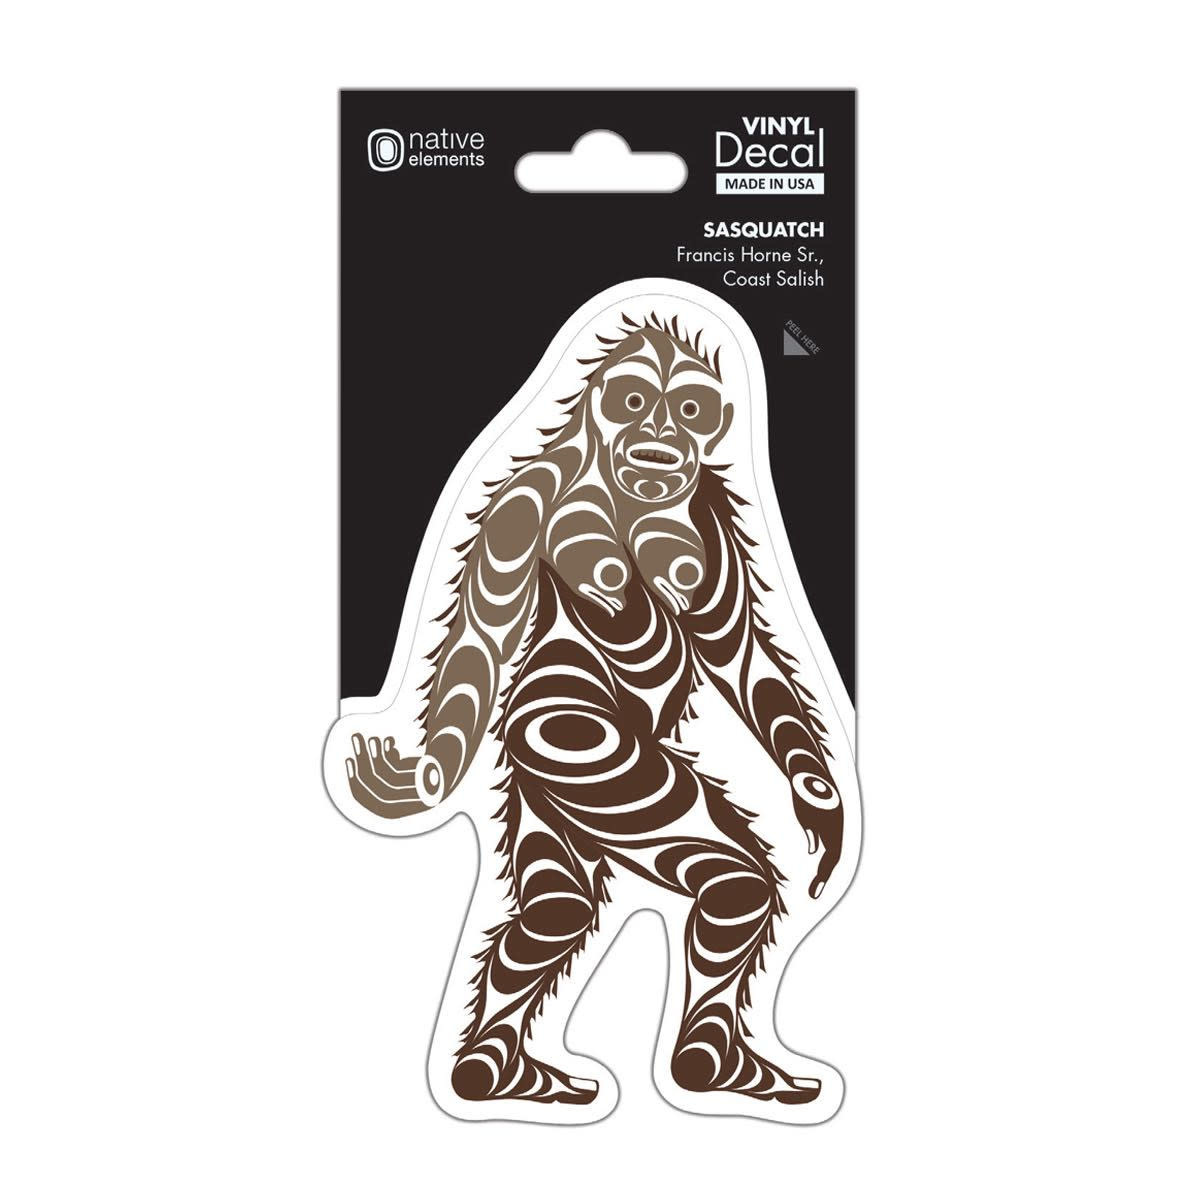 Premium Decal - Sasquatch by Francis Horne Sr.-2